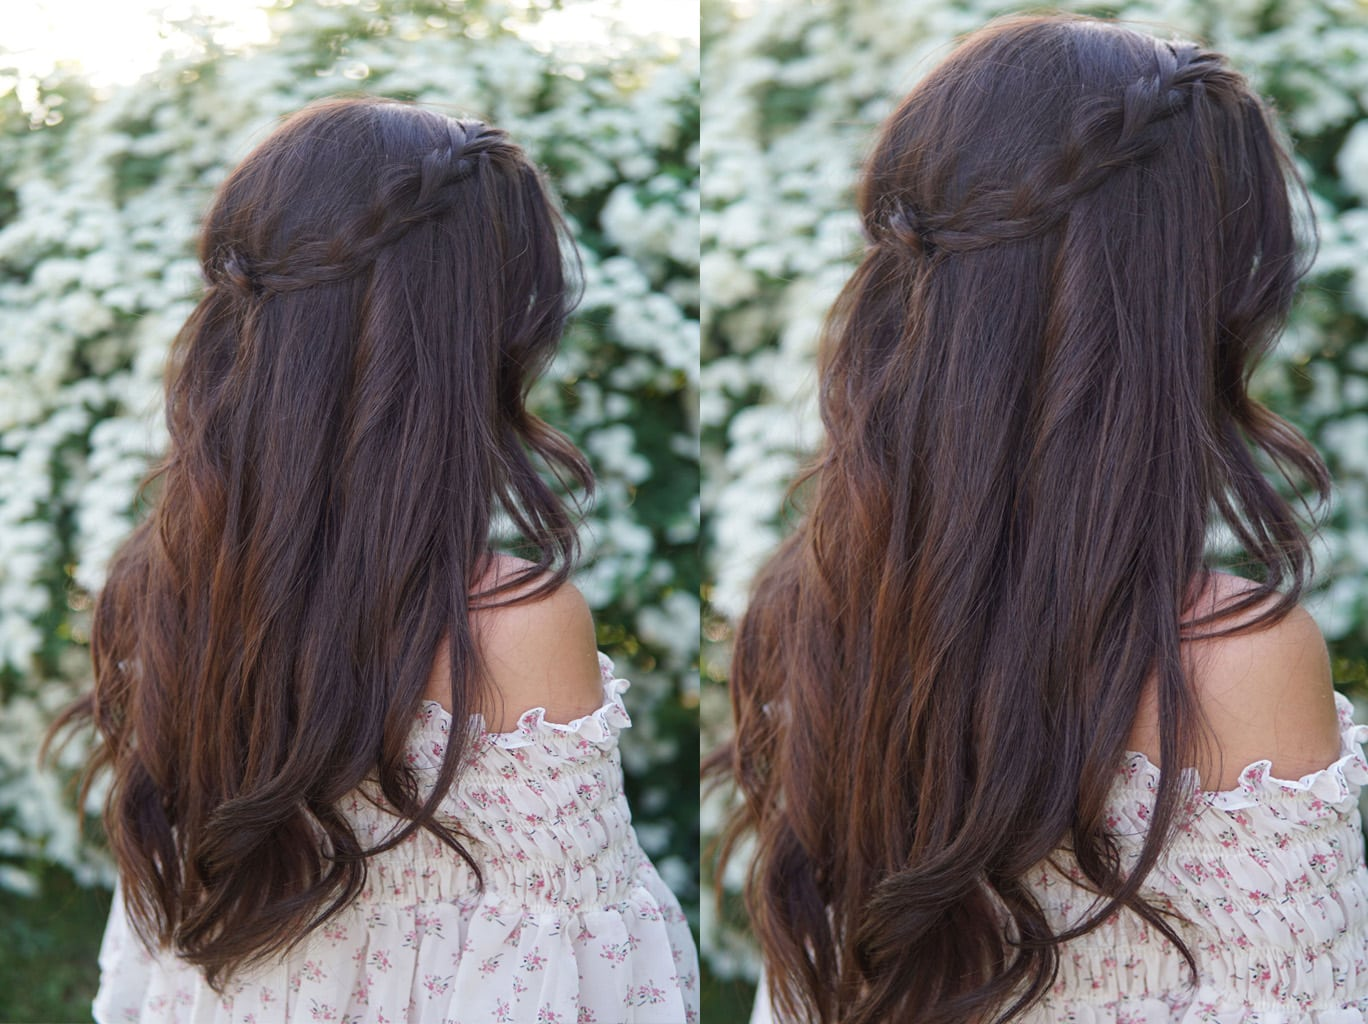 7 easy hairstyles for long hair Mash elle